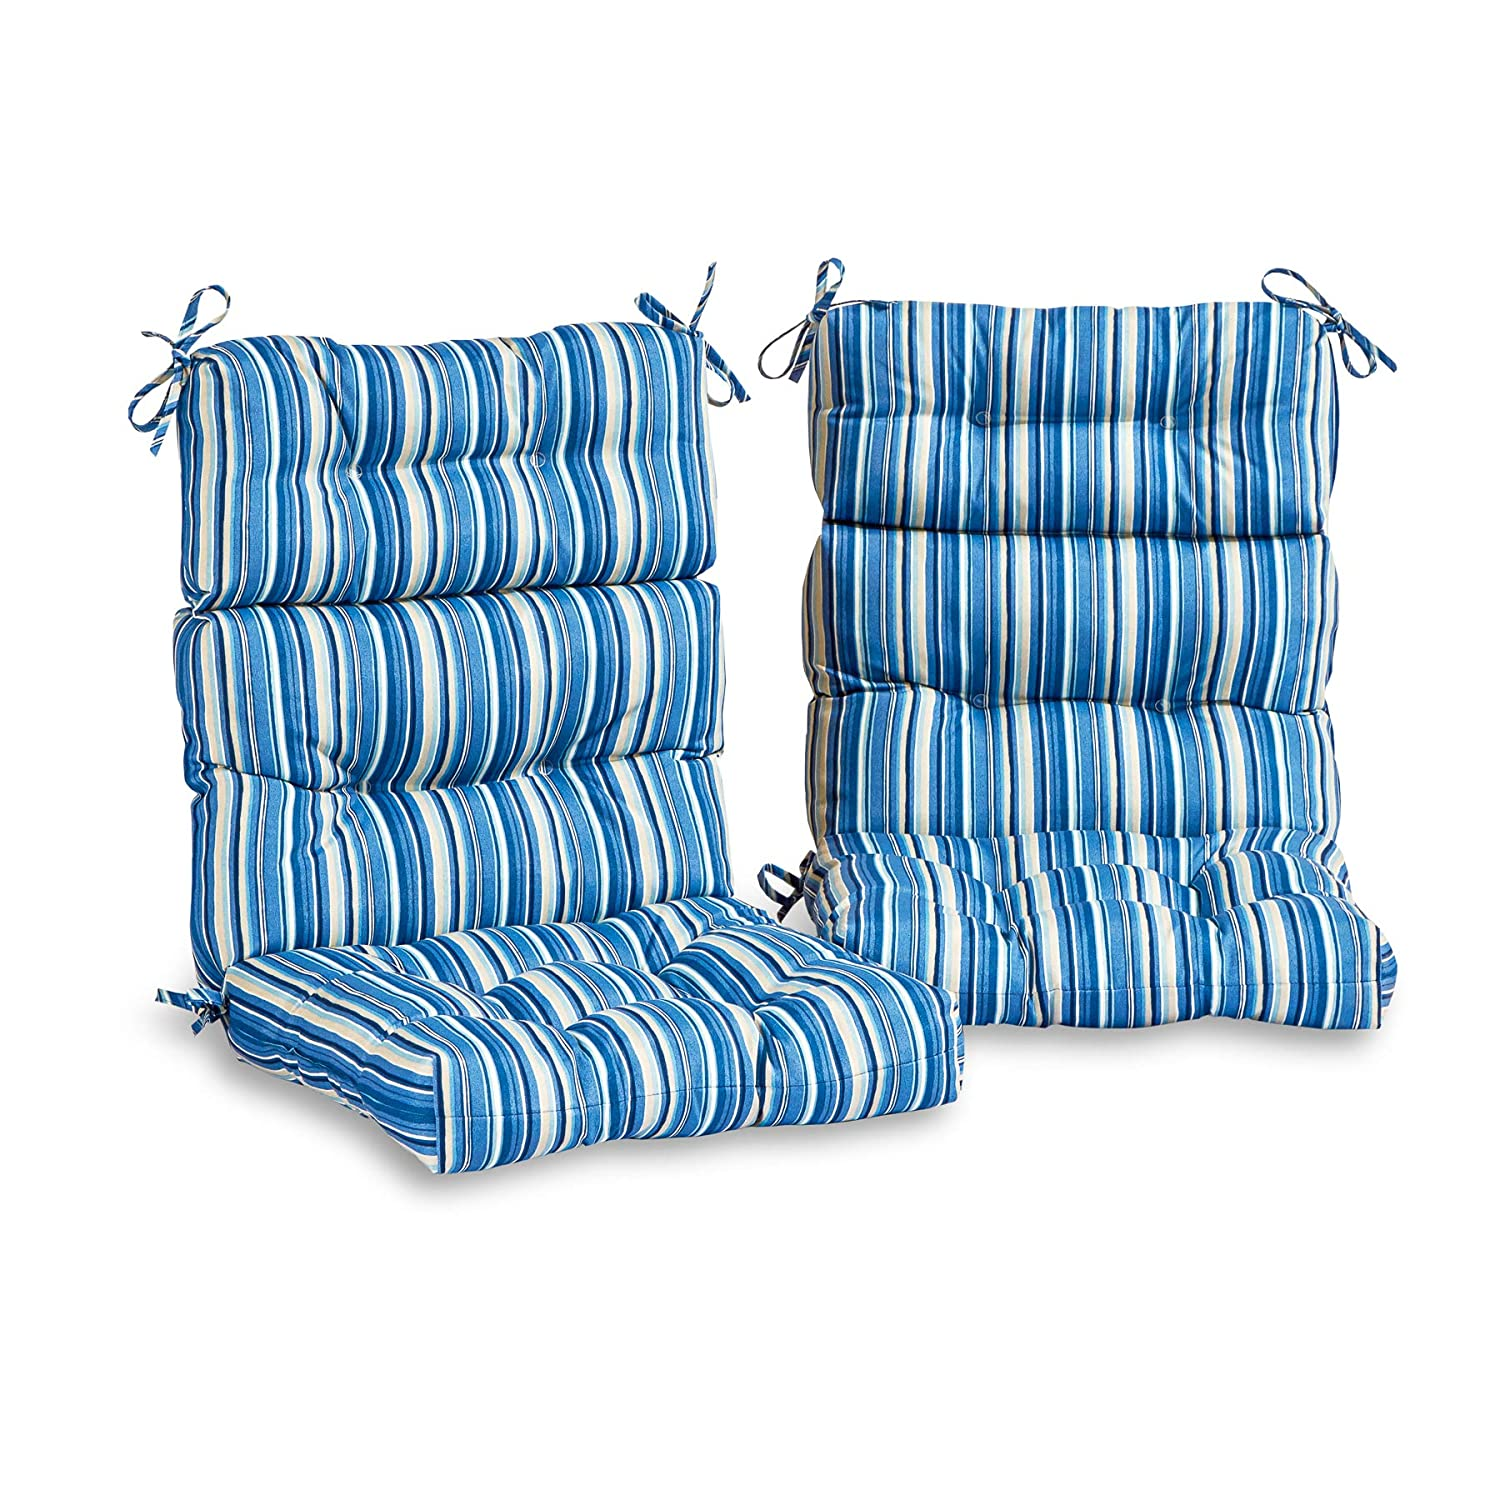 South Pine Porch AM6809S2-SAPPHIRE Outdoor High Back Chair Cushion, Set of 2, Sapphire Stripe